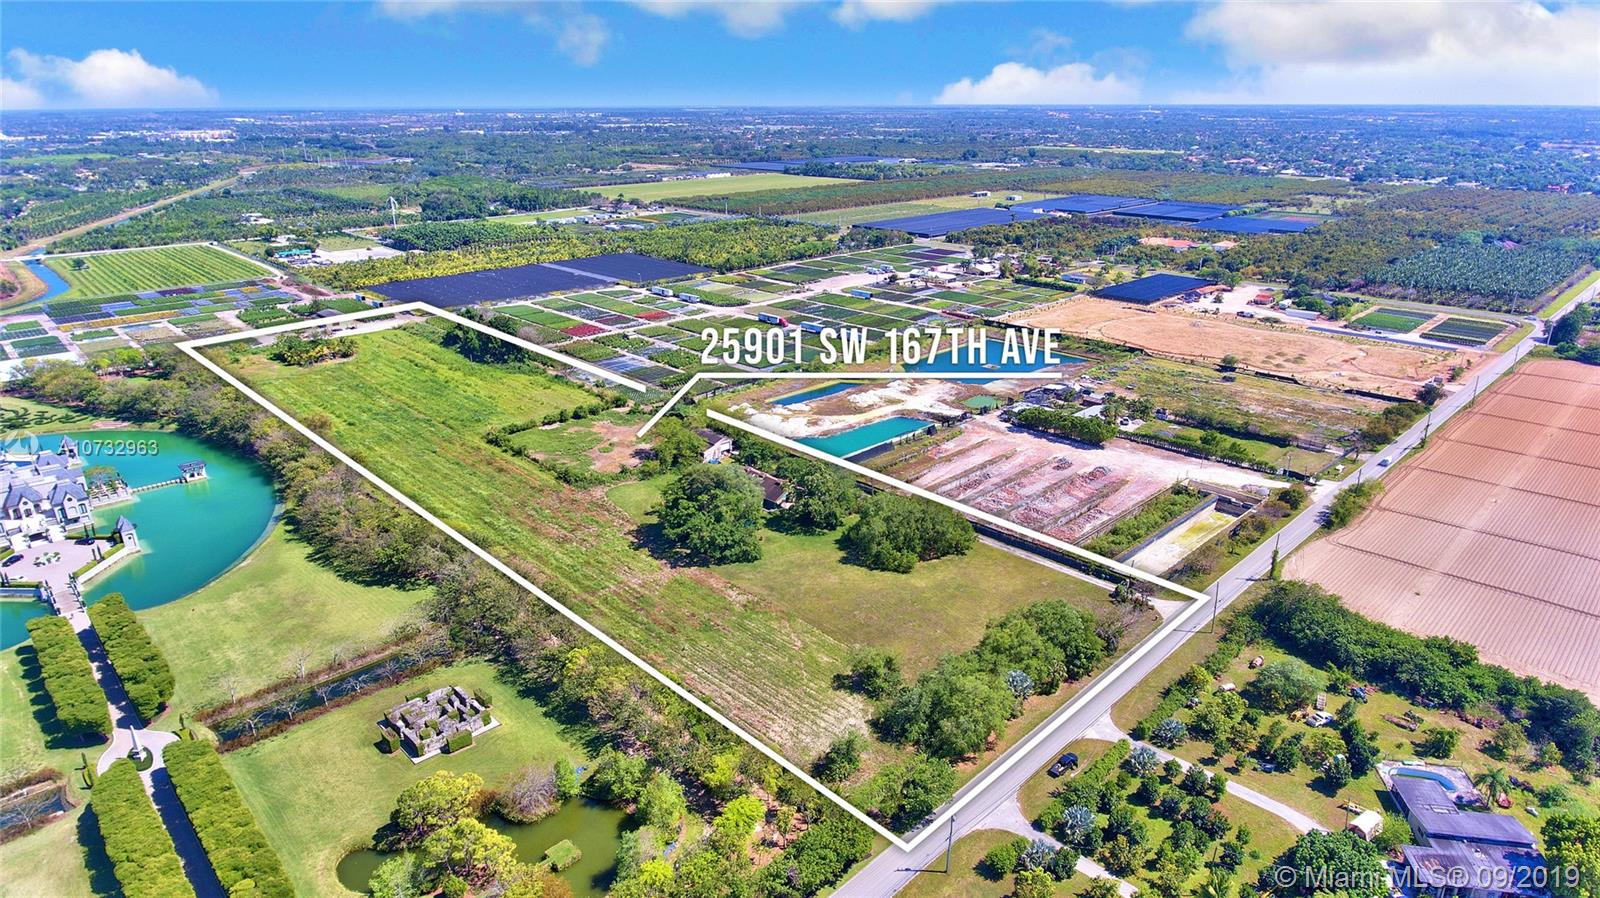 25901 SW 167th Ave, Homestead, Florida